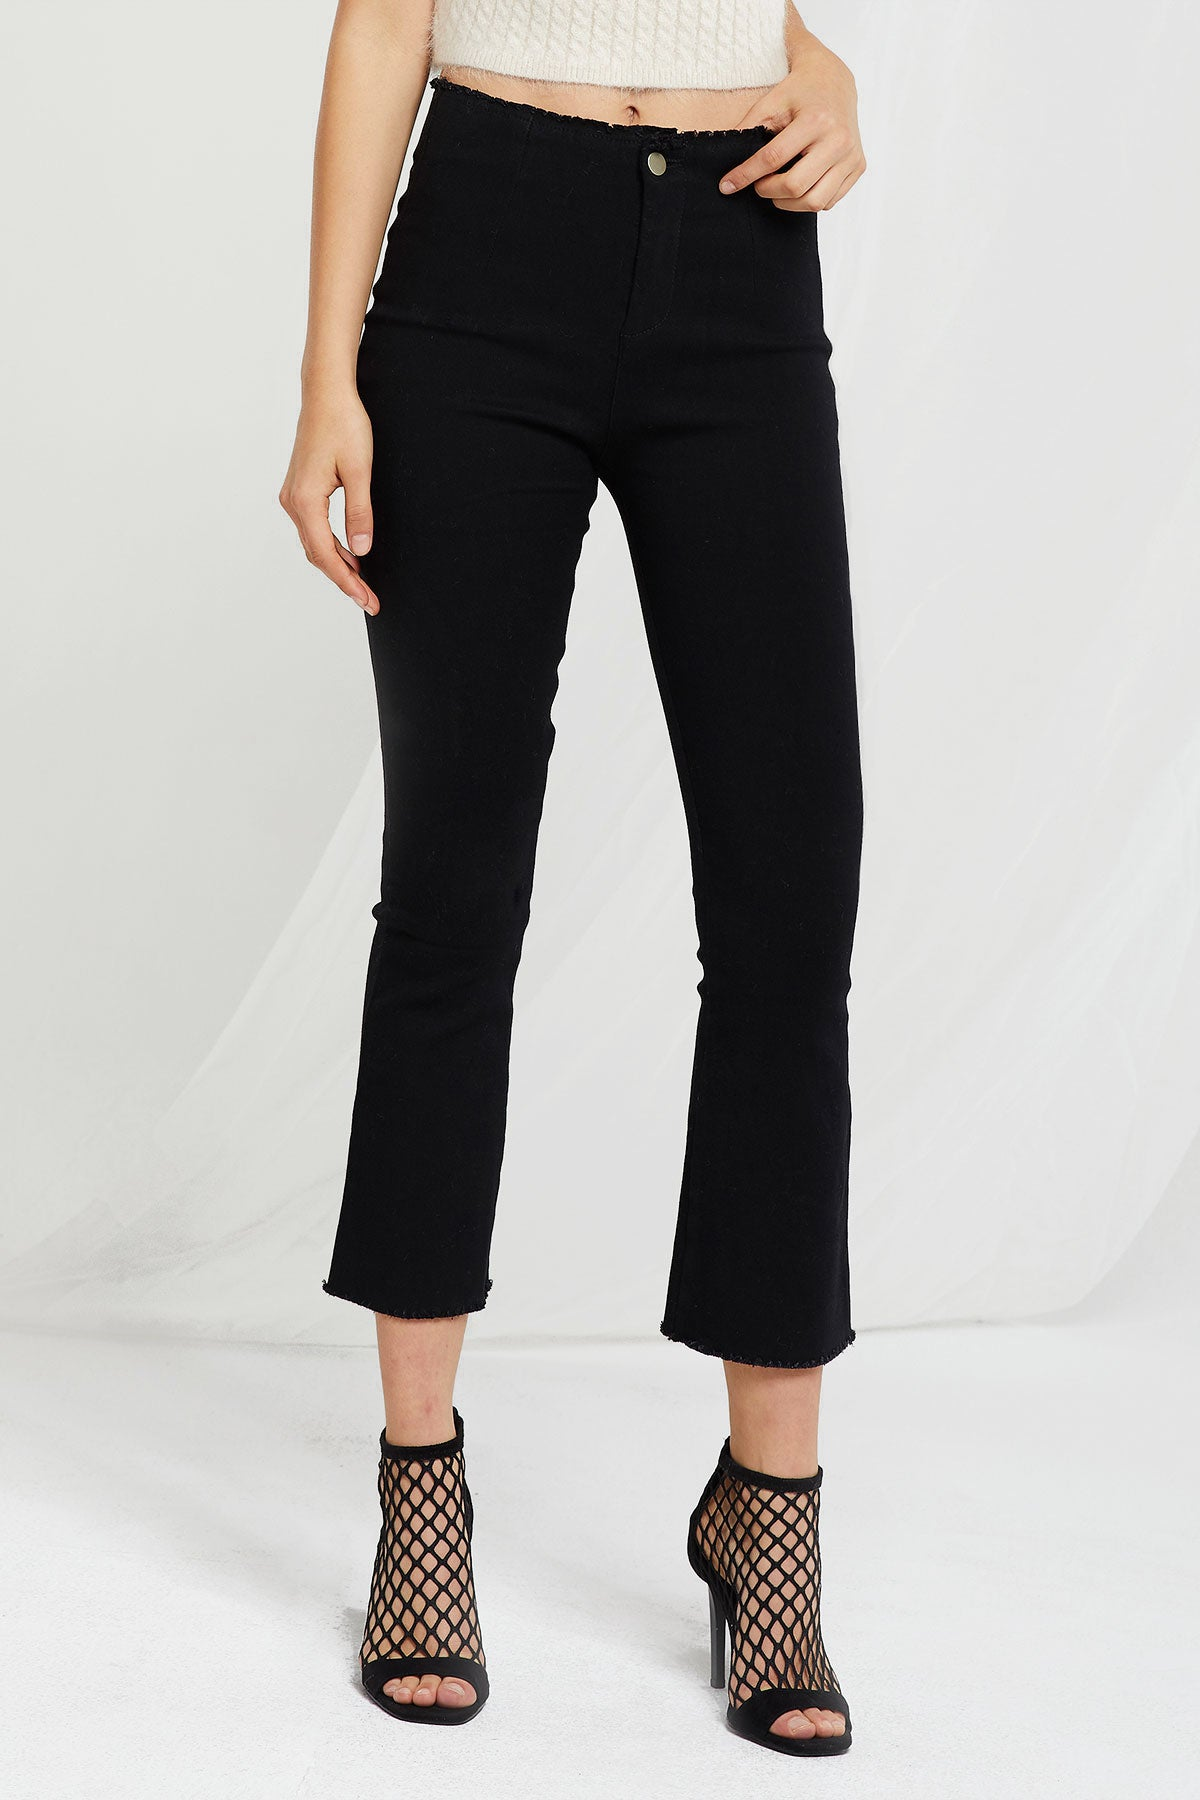 Taylor Fringed Straight Leg Pants (Pre-Order)